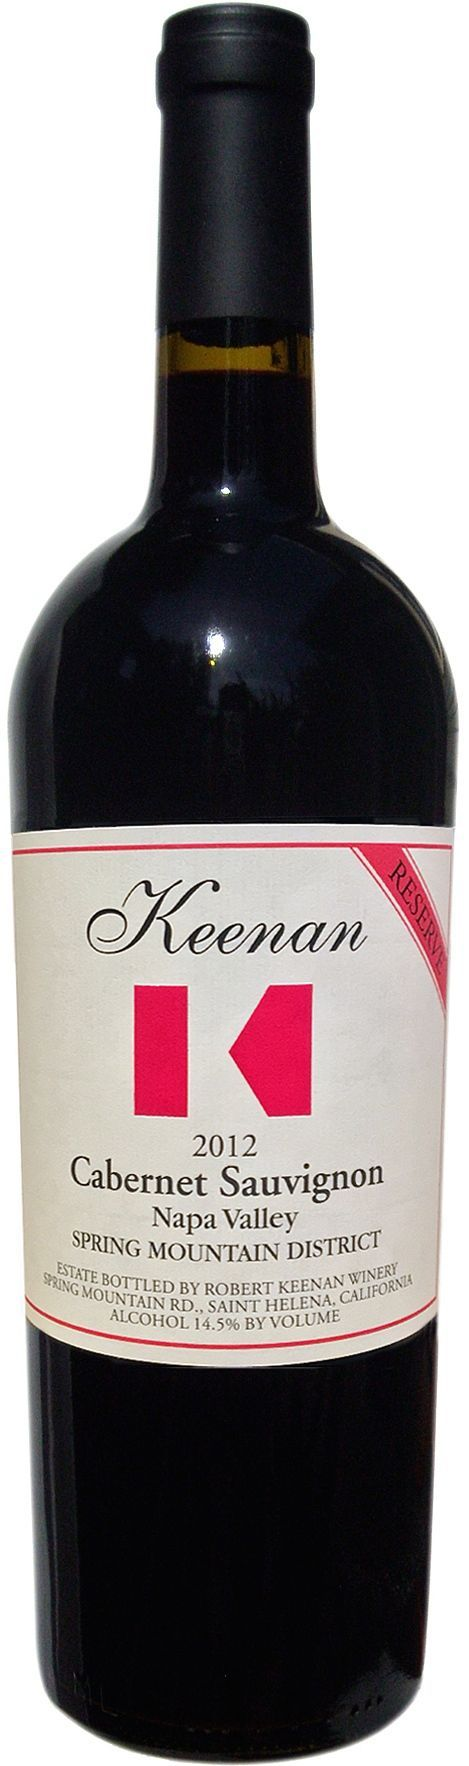 Keenan Reserve Spring Mountain District Cabernet Sauvignon 2013